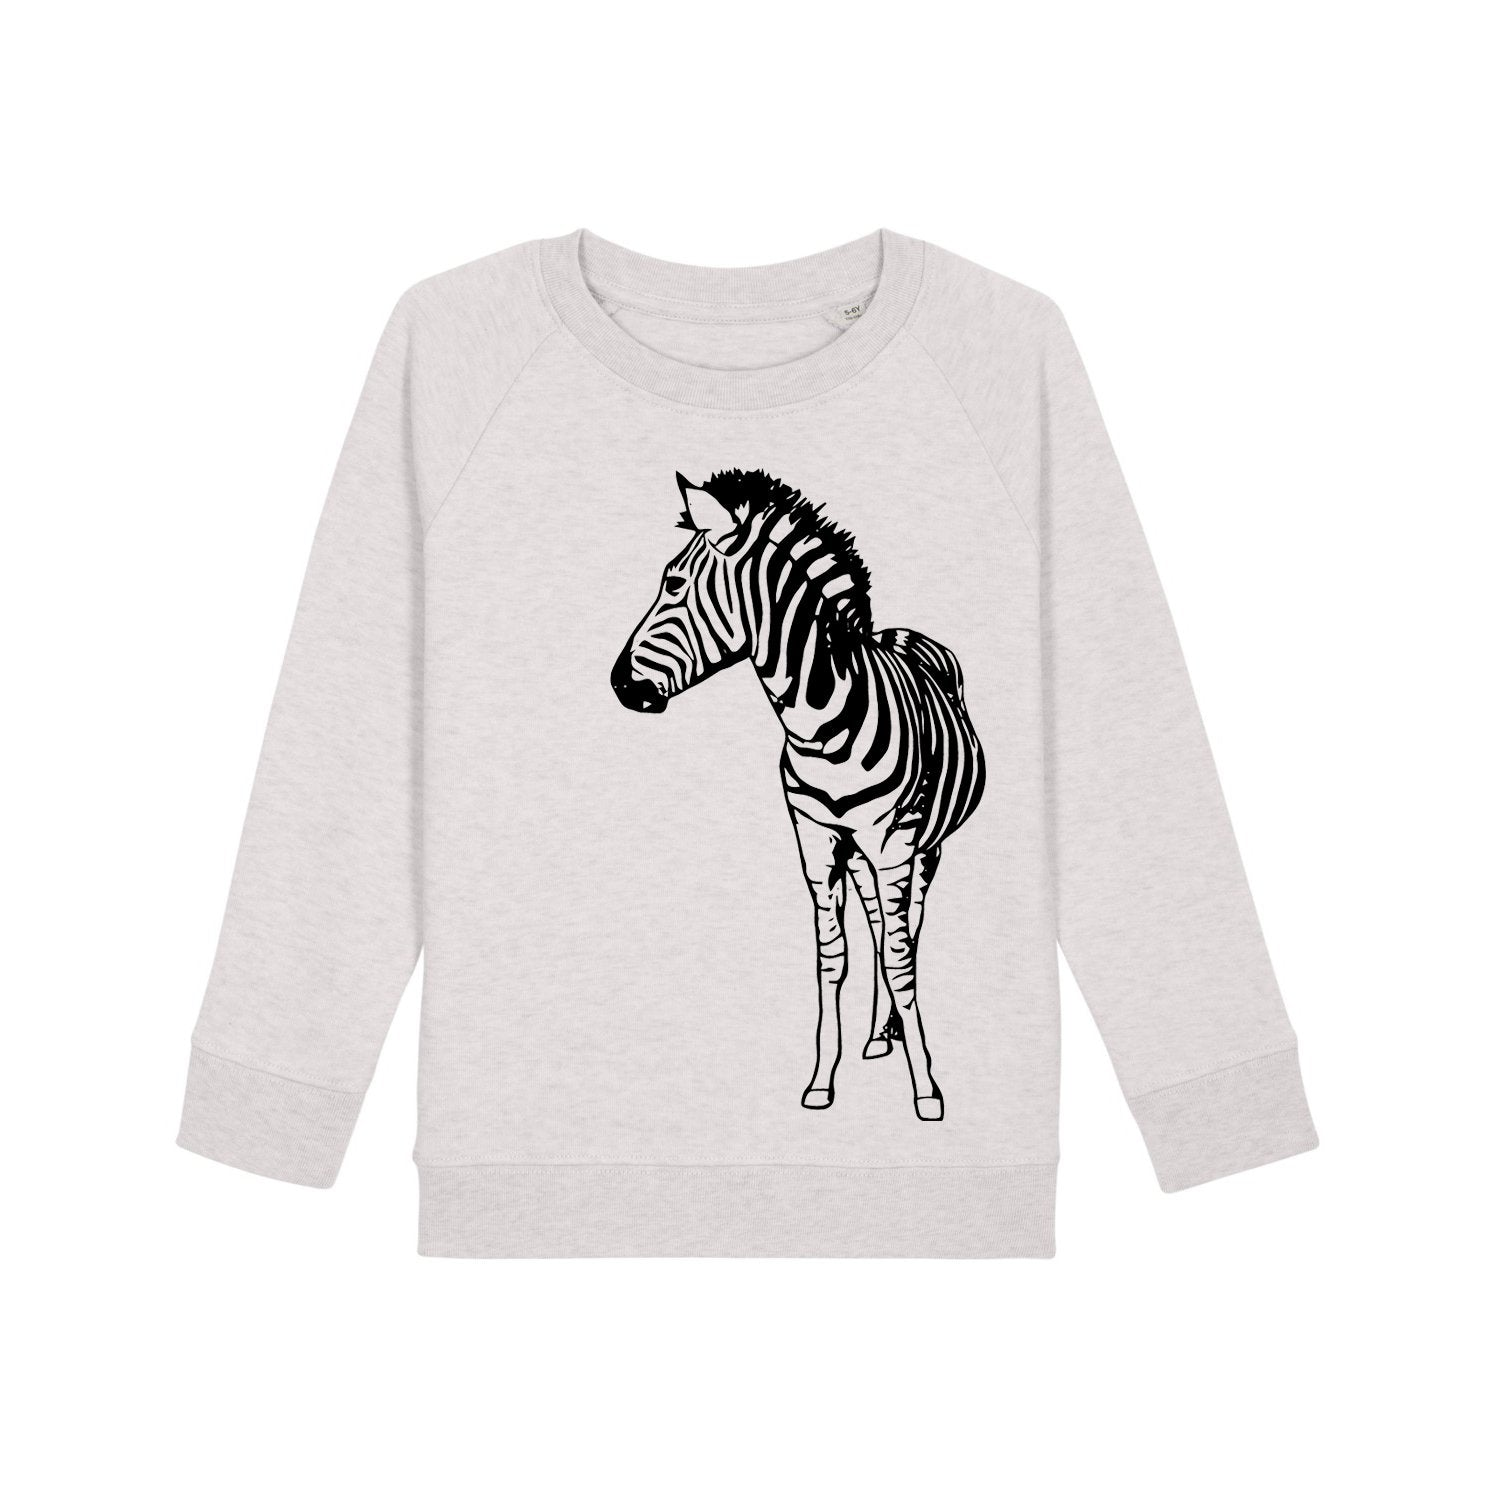 Organic kids sweater - Cream Heather Zebra